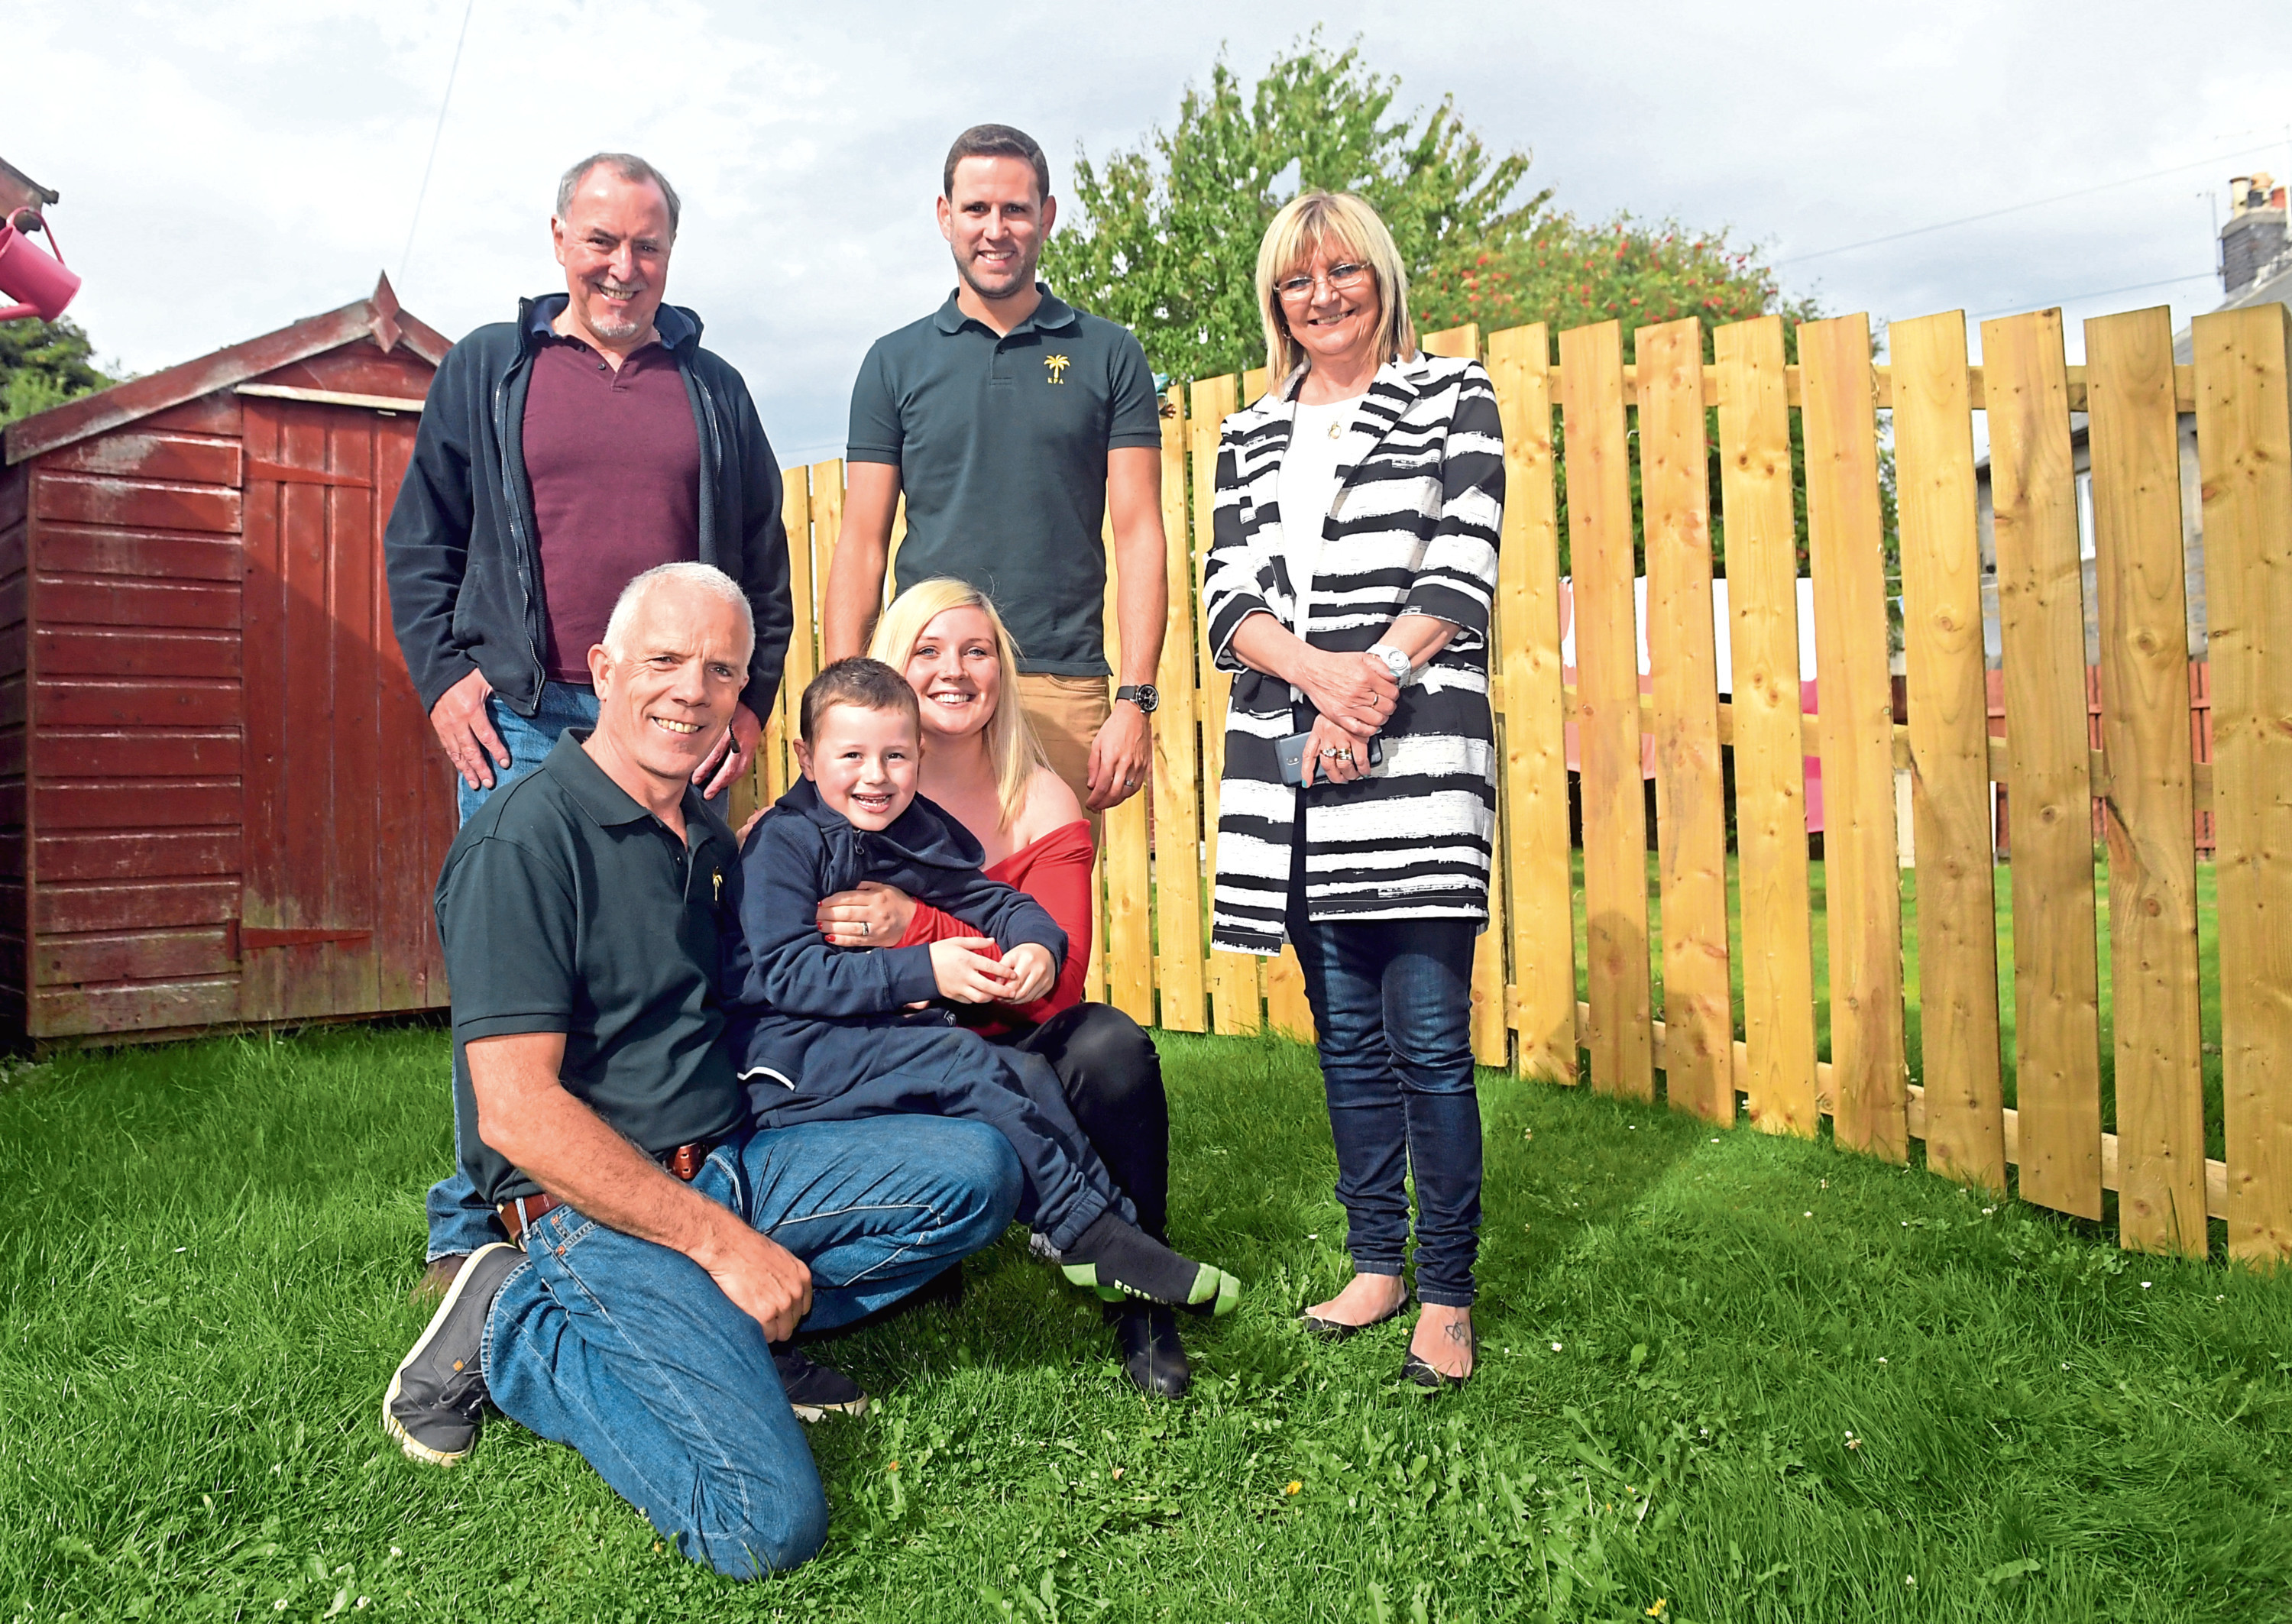 The Khyber Pass Association have completed a fence for Sarah Taylor's family in Kincorth